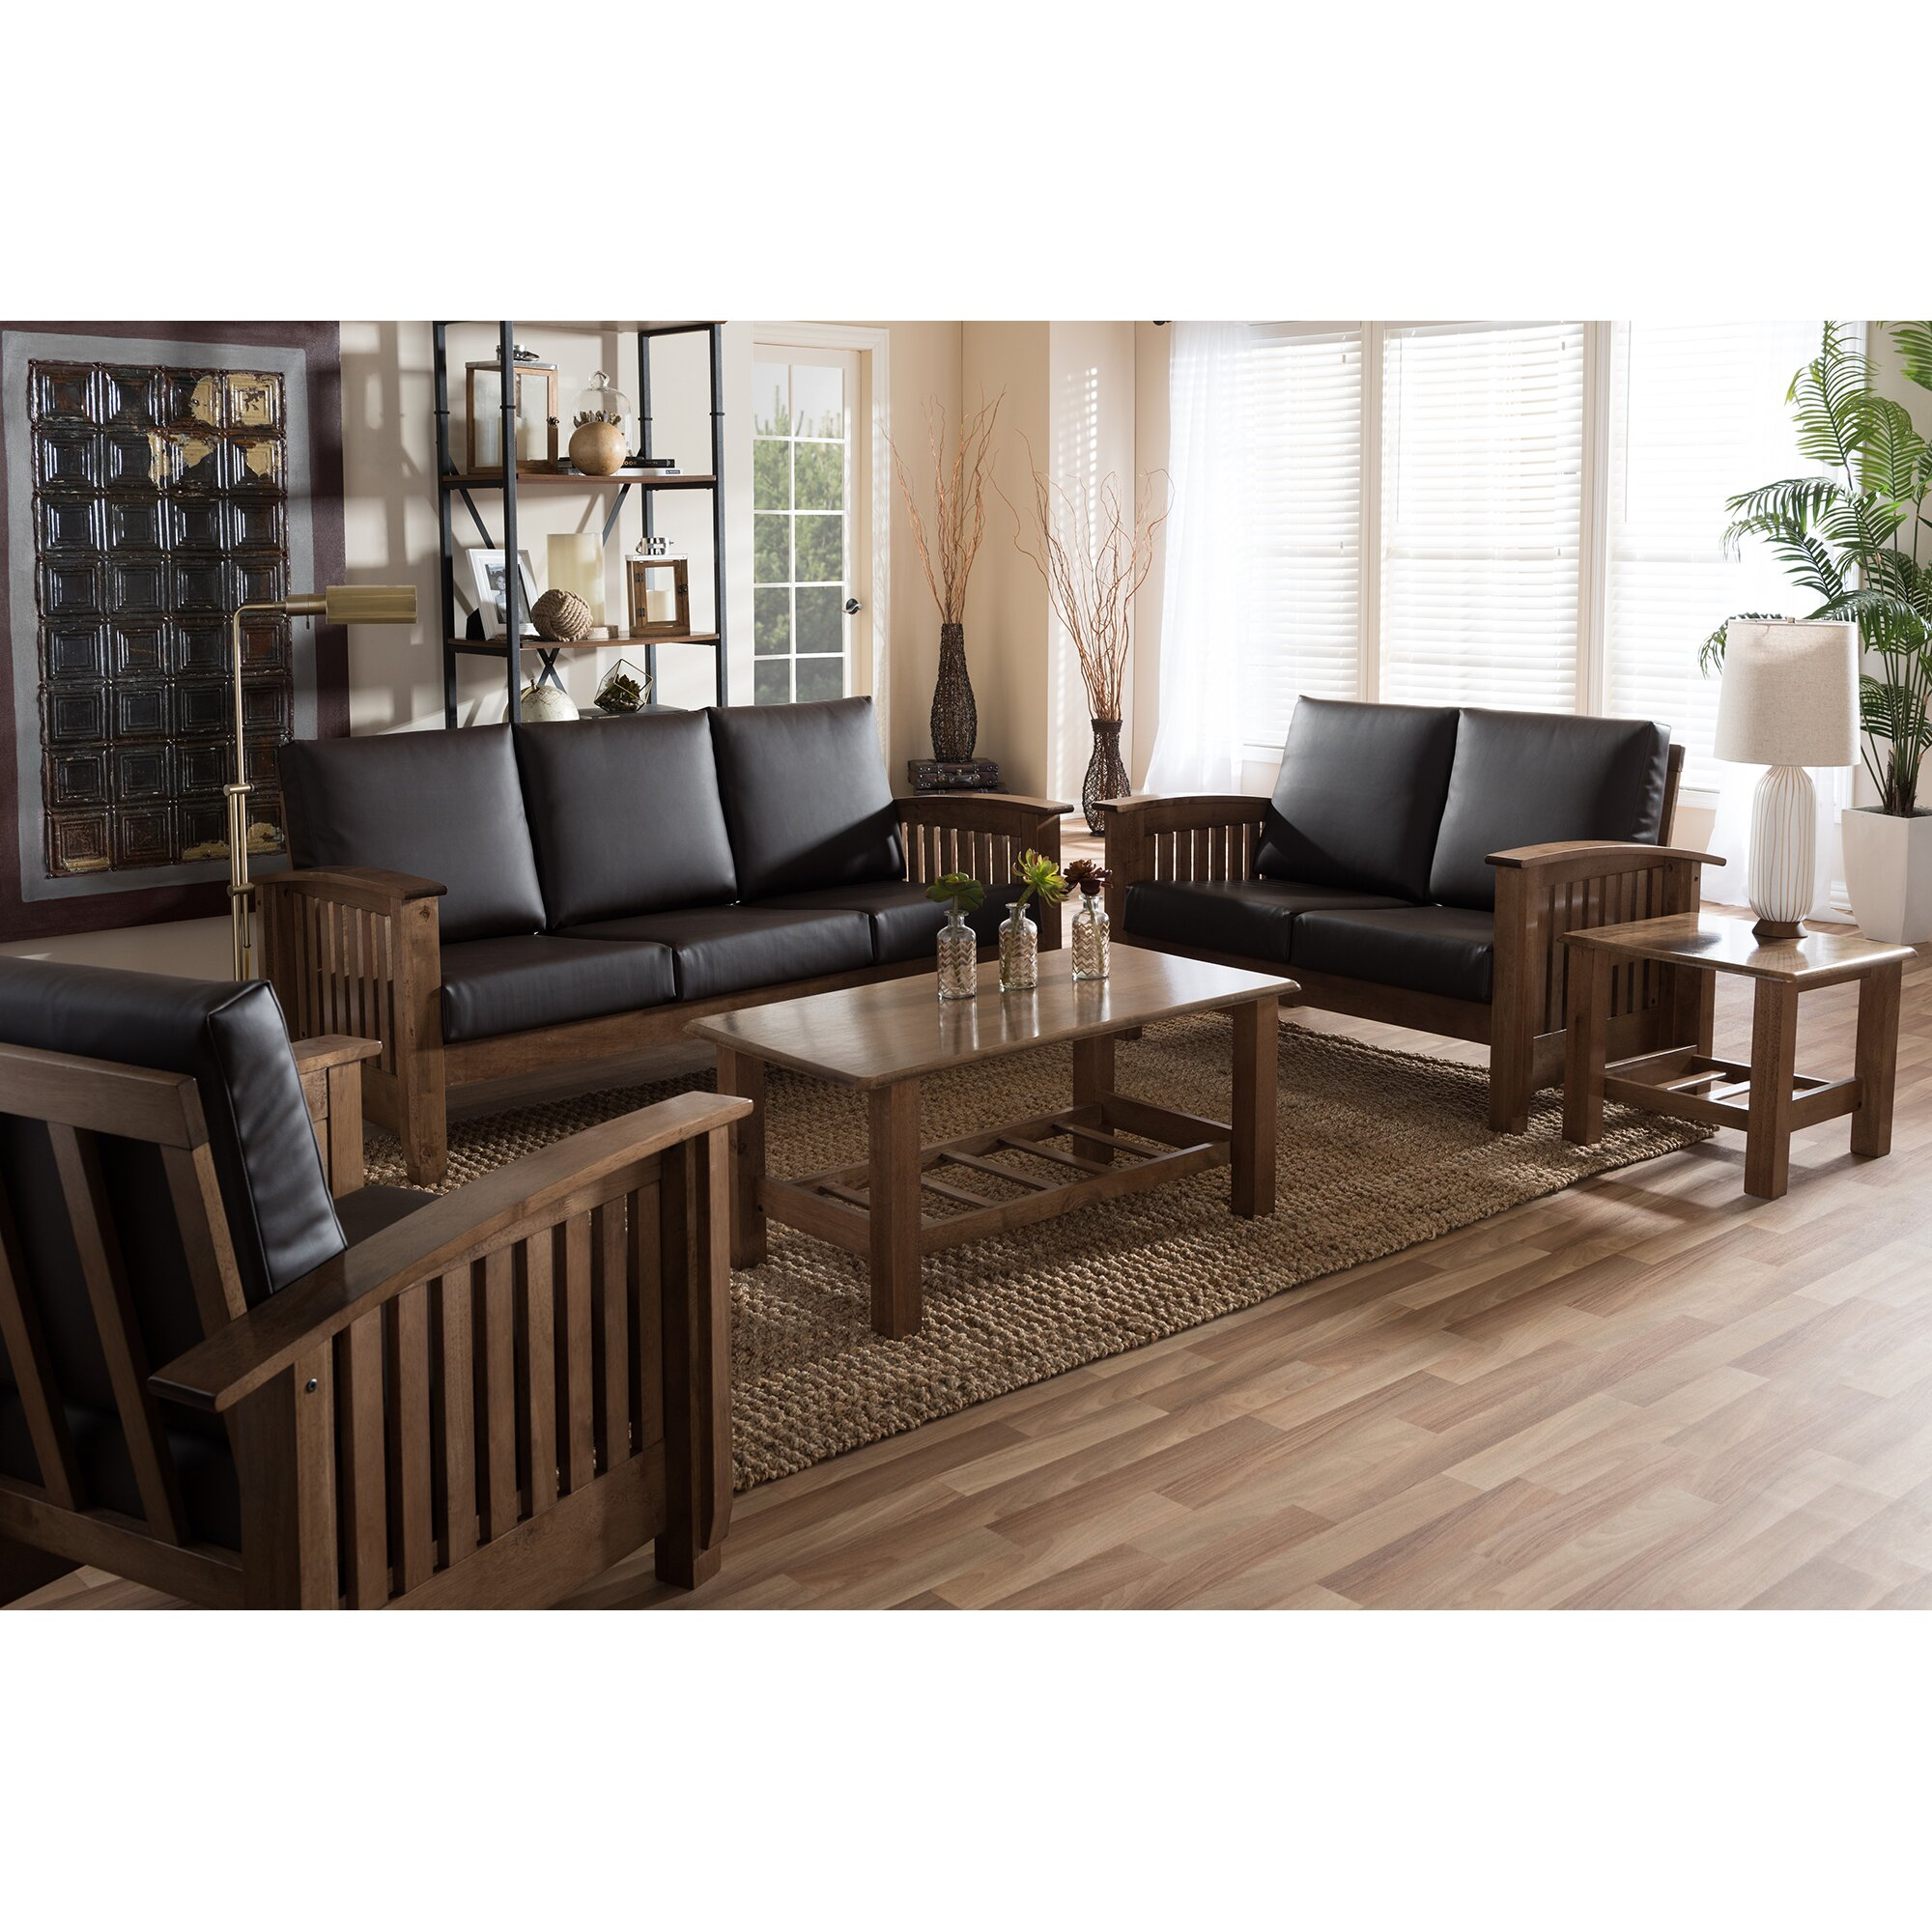 Baxton studio 5 piece living room set wayfair for Living room 5 piece sets